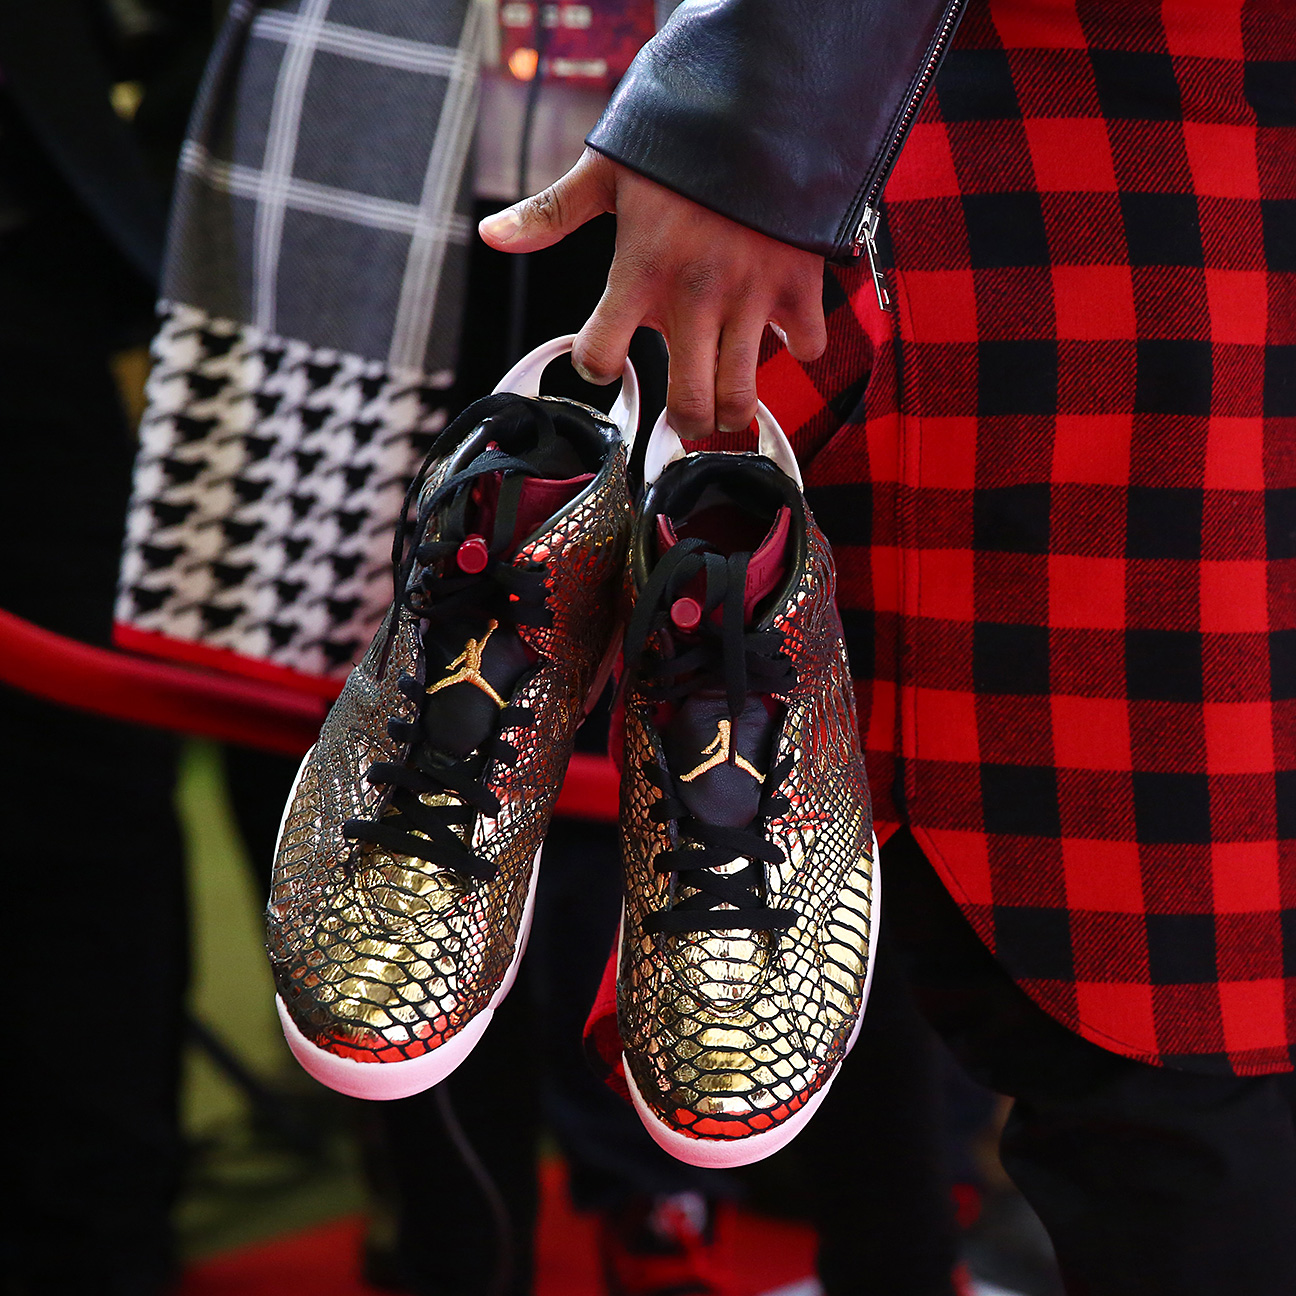 Nick Cannon arrives on the red carpet carrying his gold snakeskin Jordans  at the Ricoh Coliseum before the All-Star Celebrity Game. 2806b3ae9370